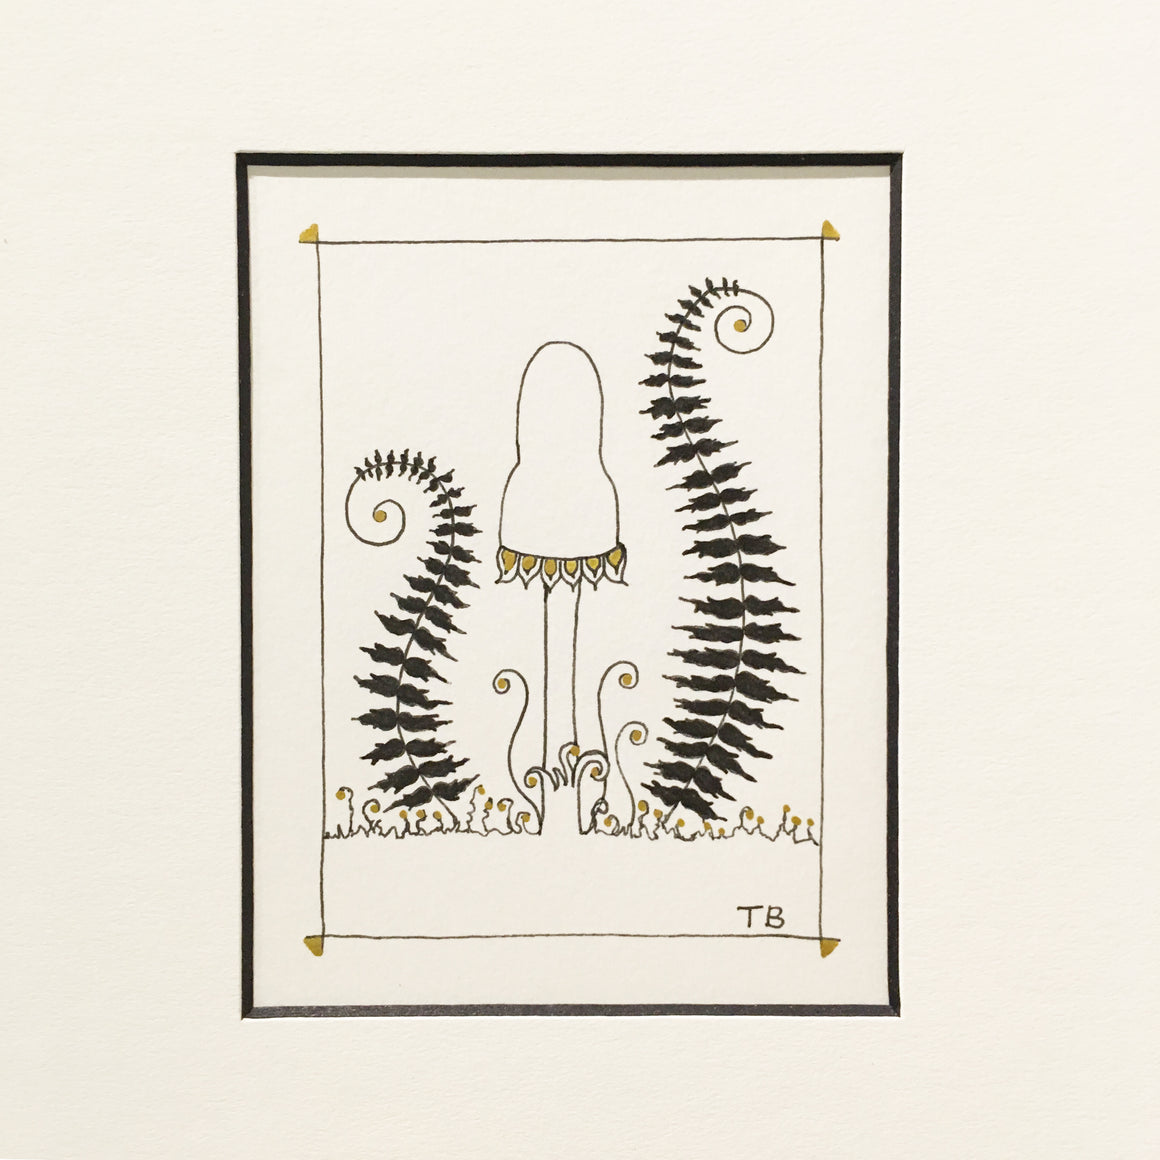 Pen and ink drawing with black and gold ink. mushroom and two ferns on each side reminiscent of a Greek Lyre instrument.